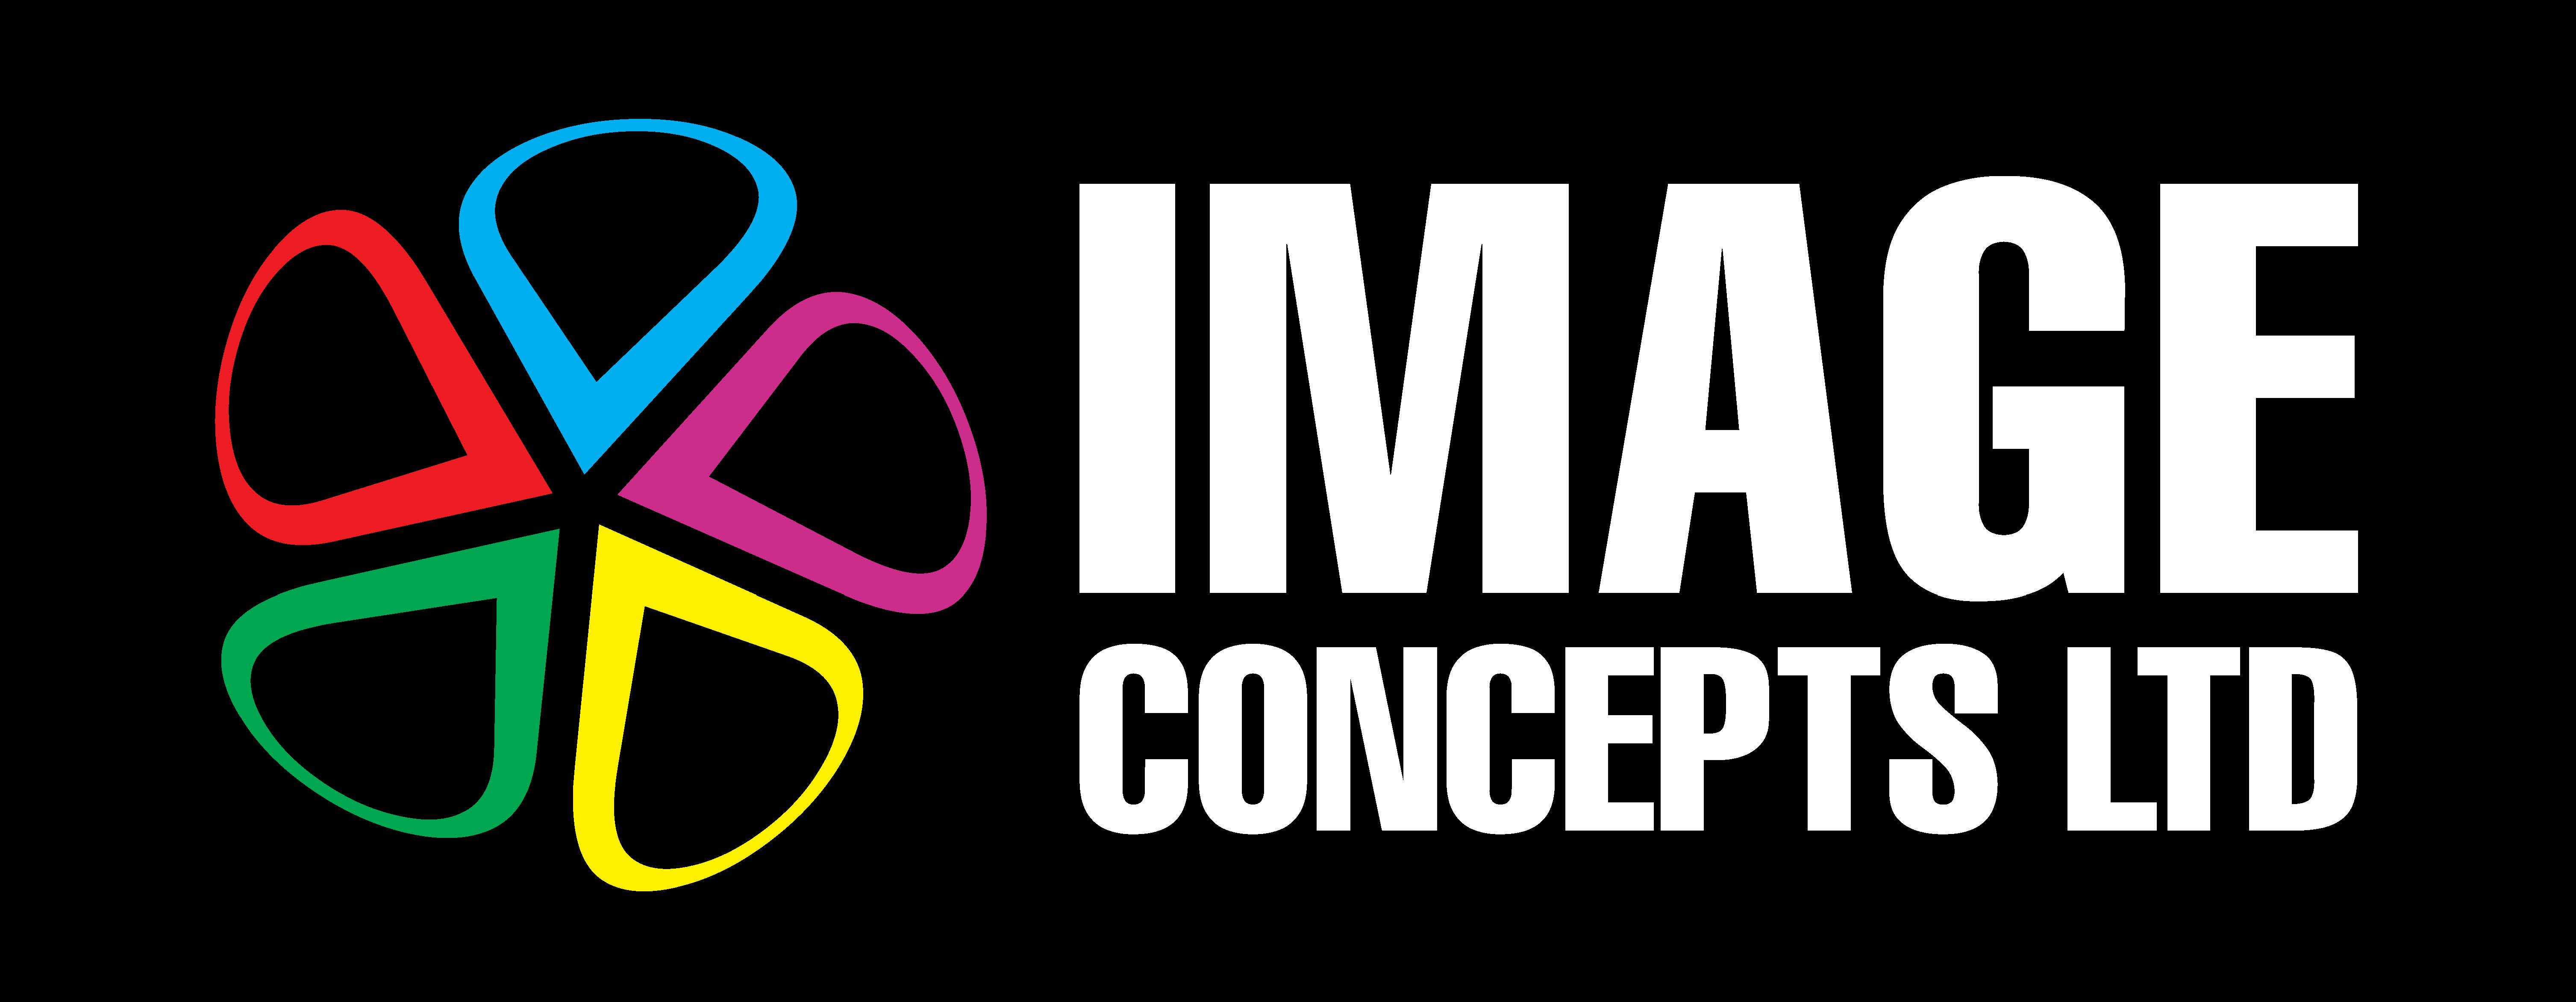 Printers in east tamaki auckland image concepts reheart Choice Image